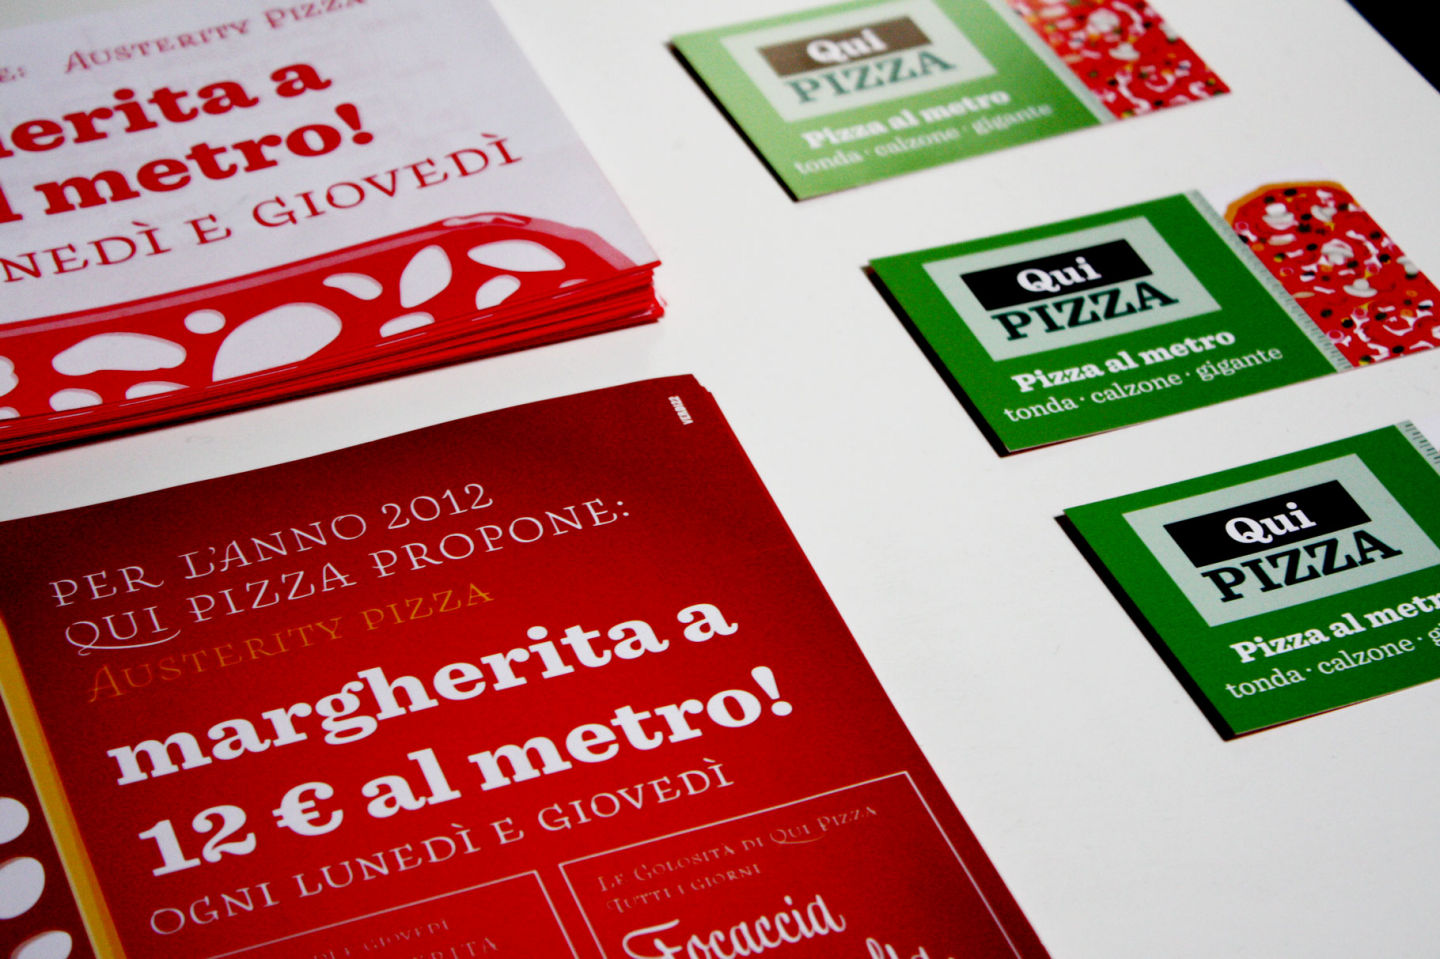 Qui Pizza logo restyling and environmental